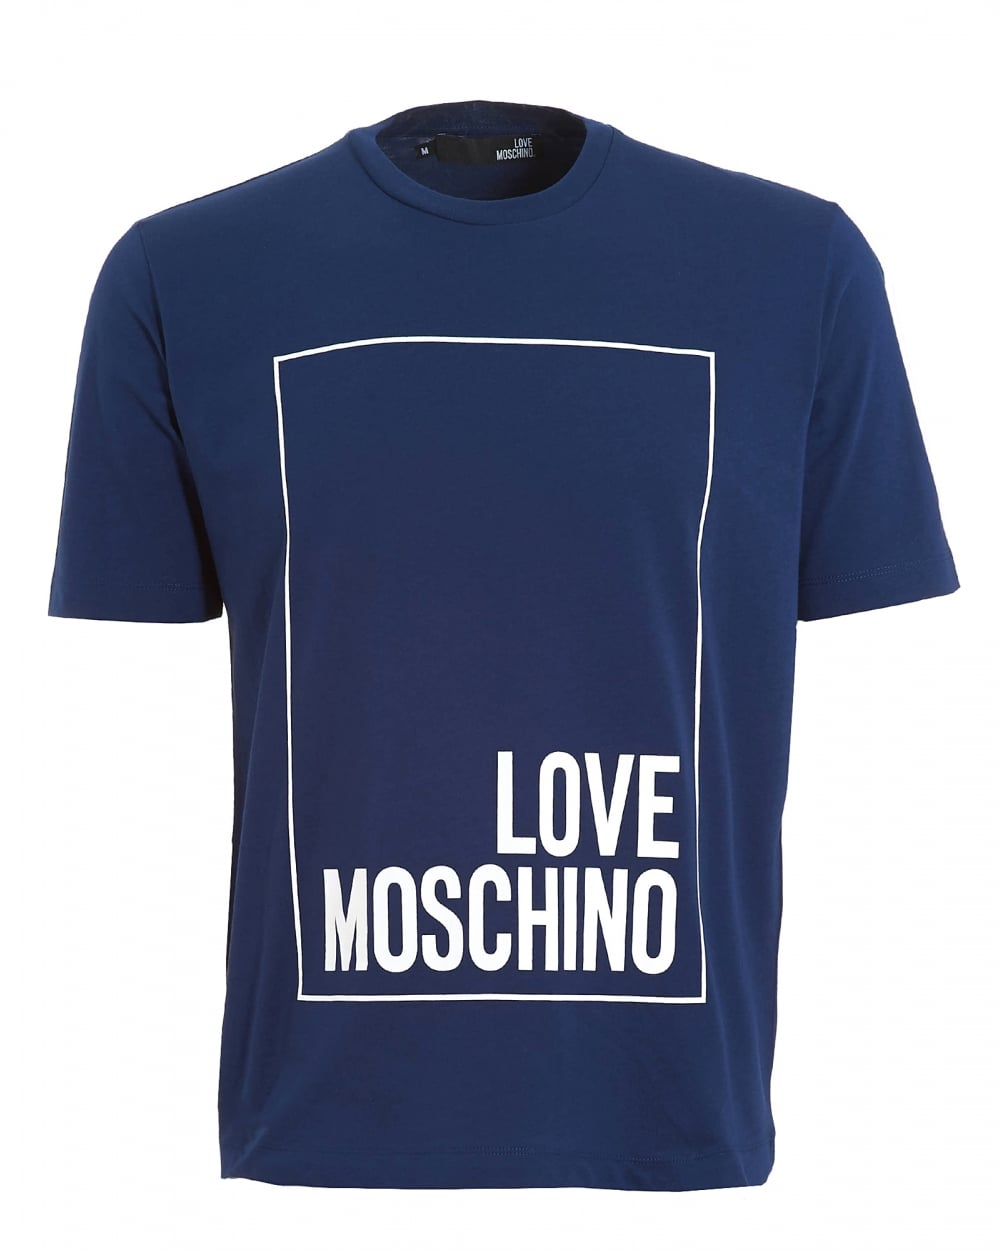 love moschino mens box logo t shirt regular fit blue tee. Black Bedroom Furniture Sets. Home Design Ideas